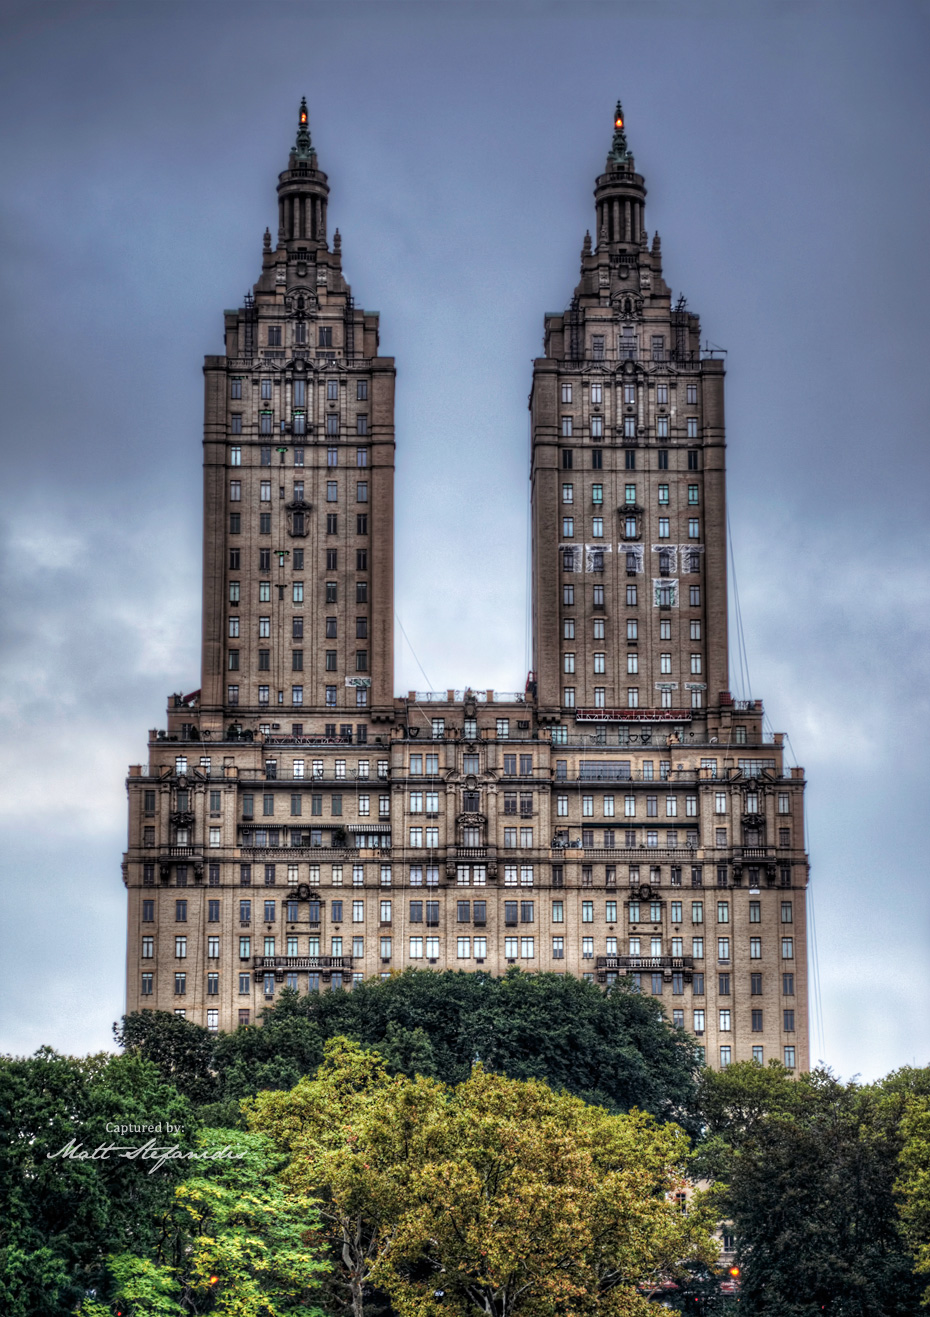 central-park-03-nyc-hdr-photography